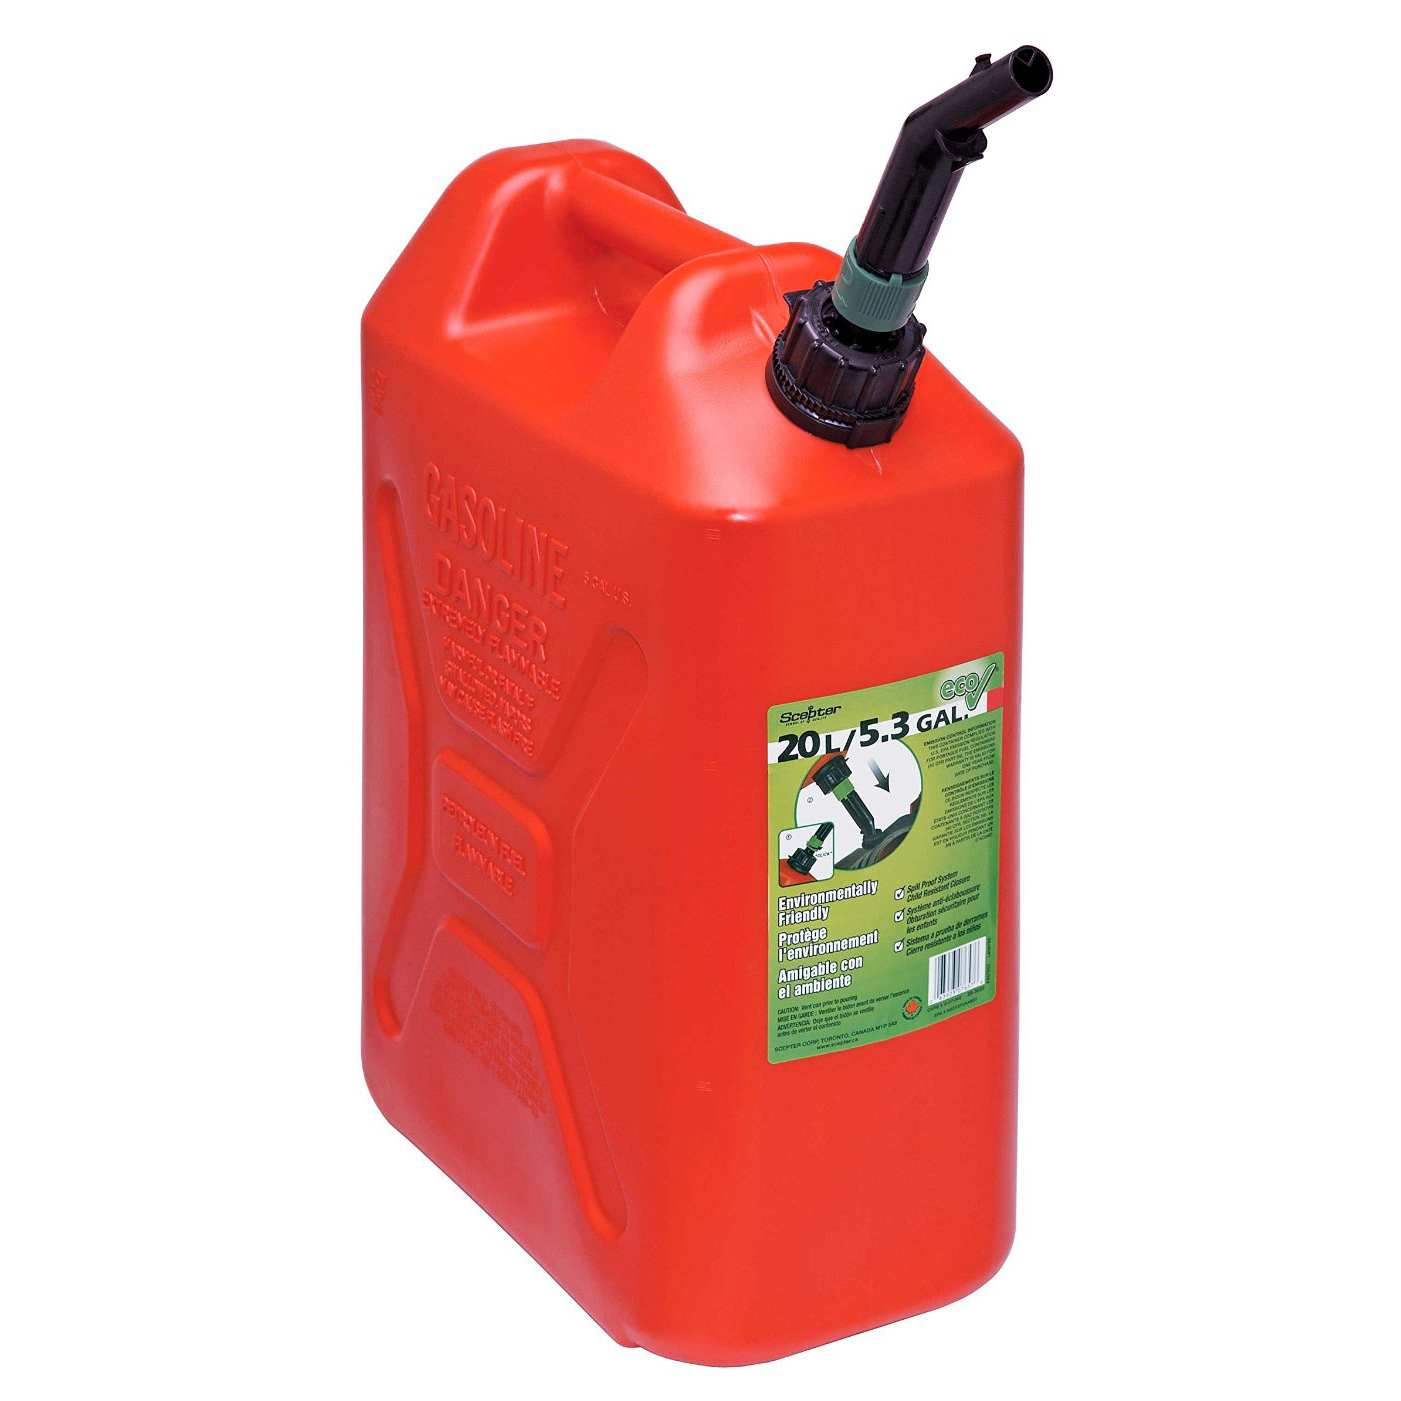 3 gallon jerry can karcher k2 window cleaner